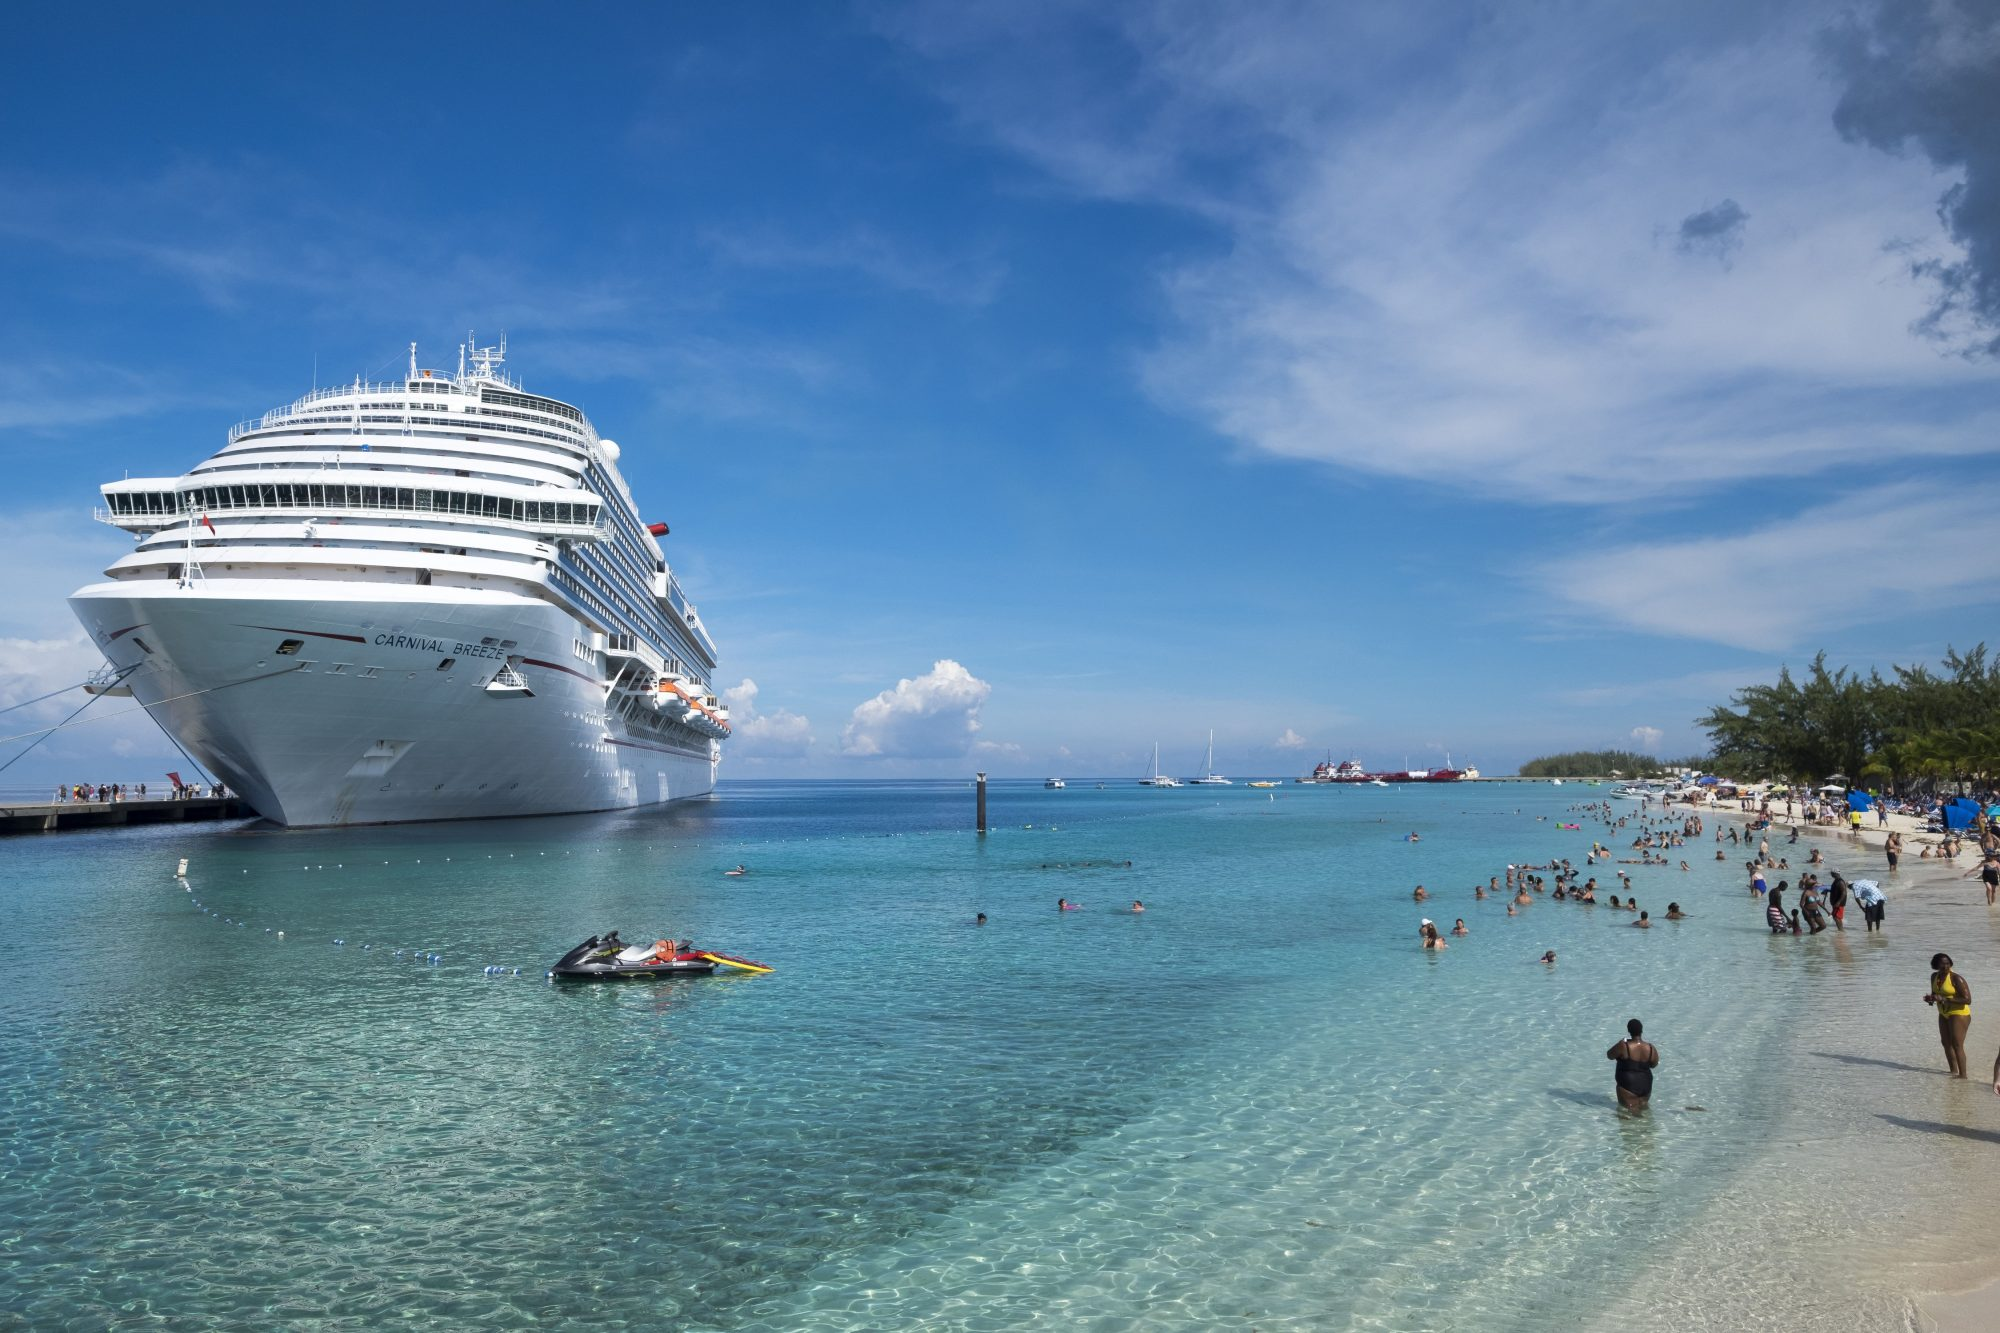 Have You Tried This Little Trick to Save Money on Cruises?